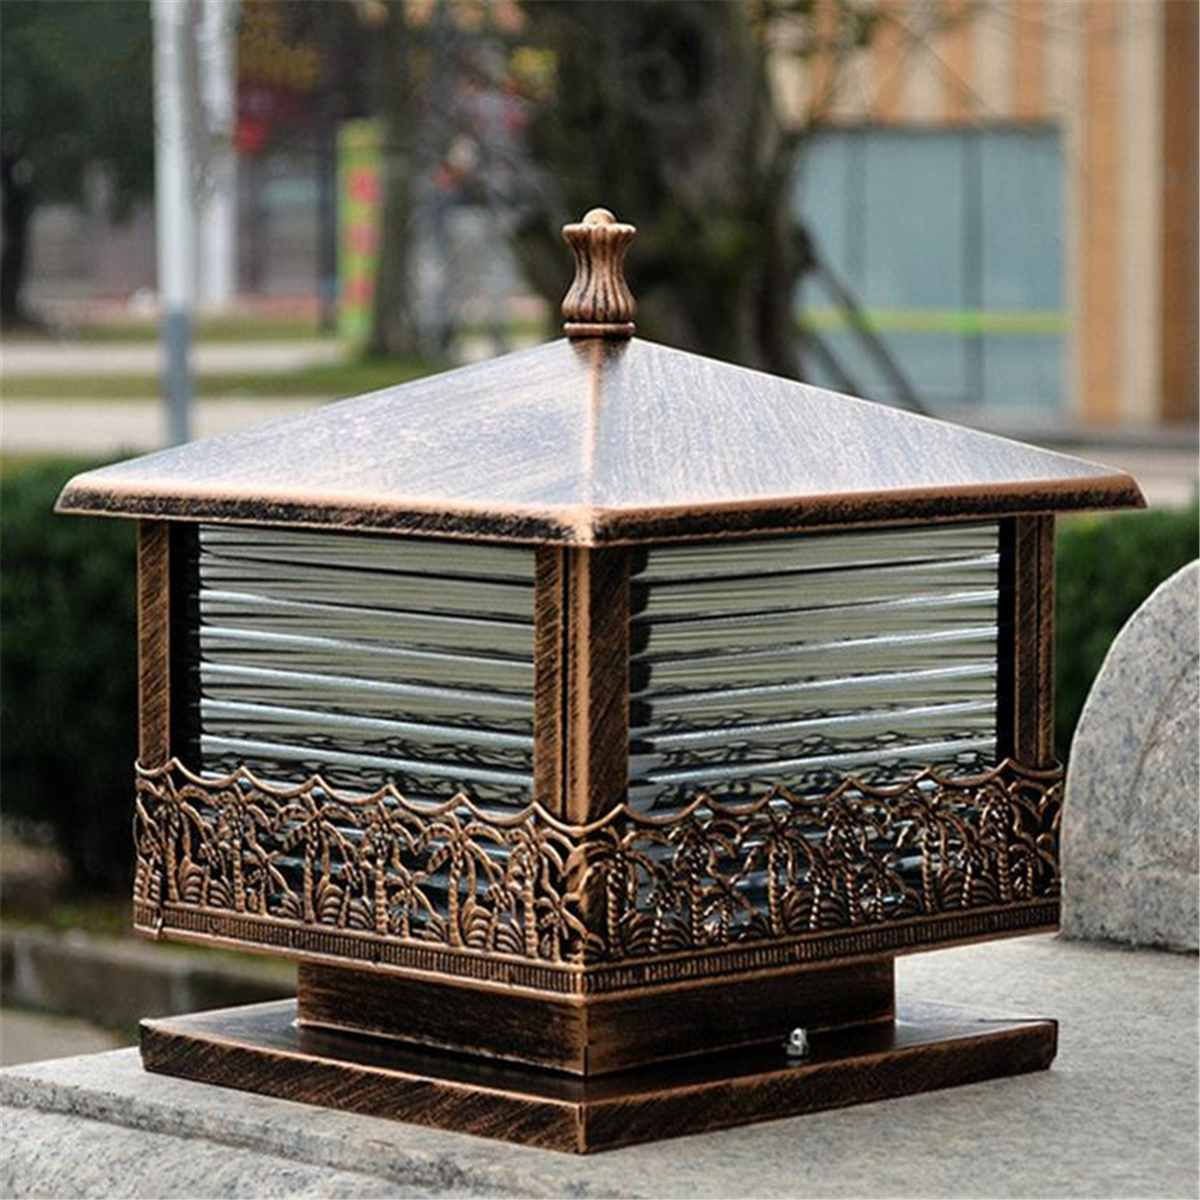 Black Bronze Vintage Pillar Light Garden Gate Post Lamp Glass Lantern Outdoor Patio Yard Landscape Lighting Night Lamp